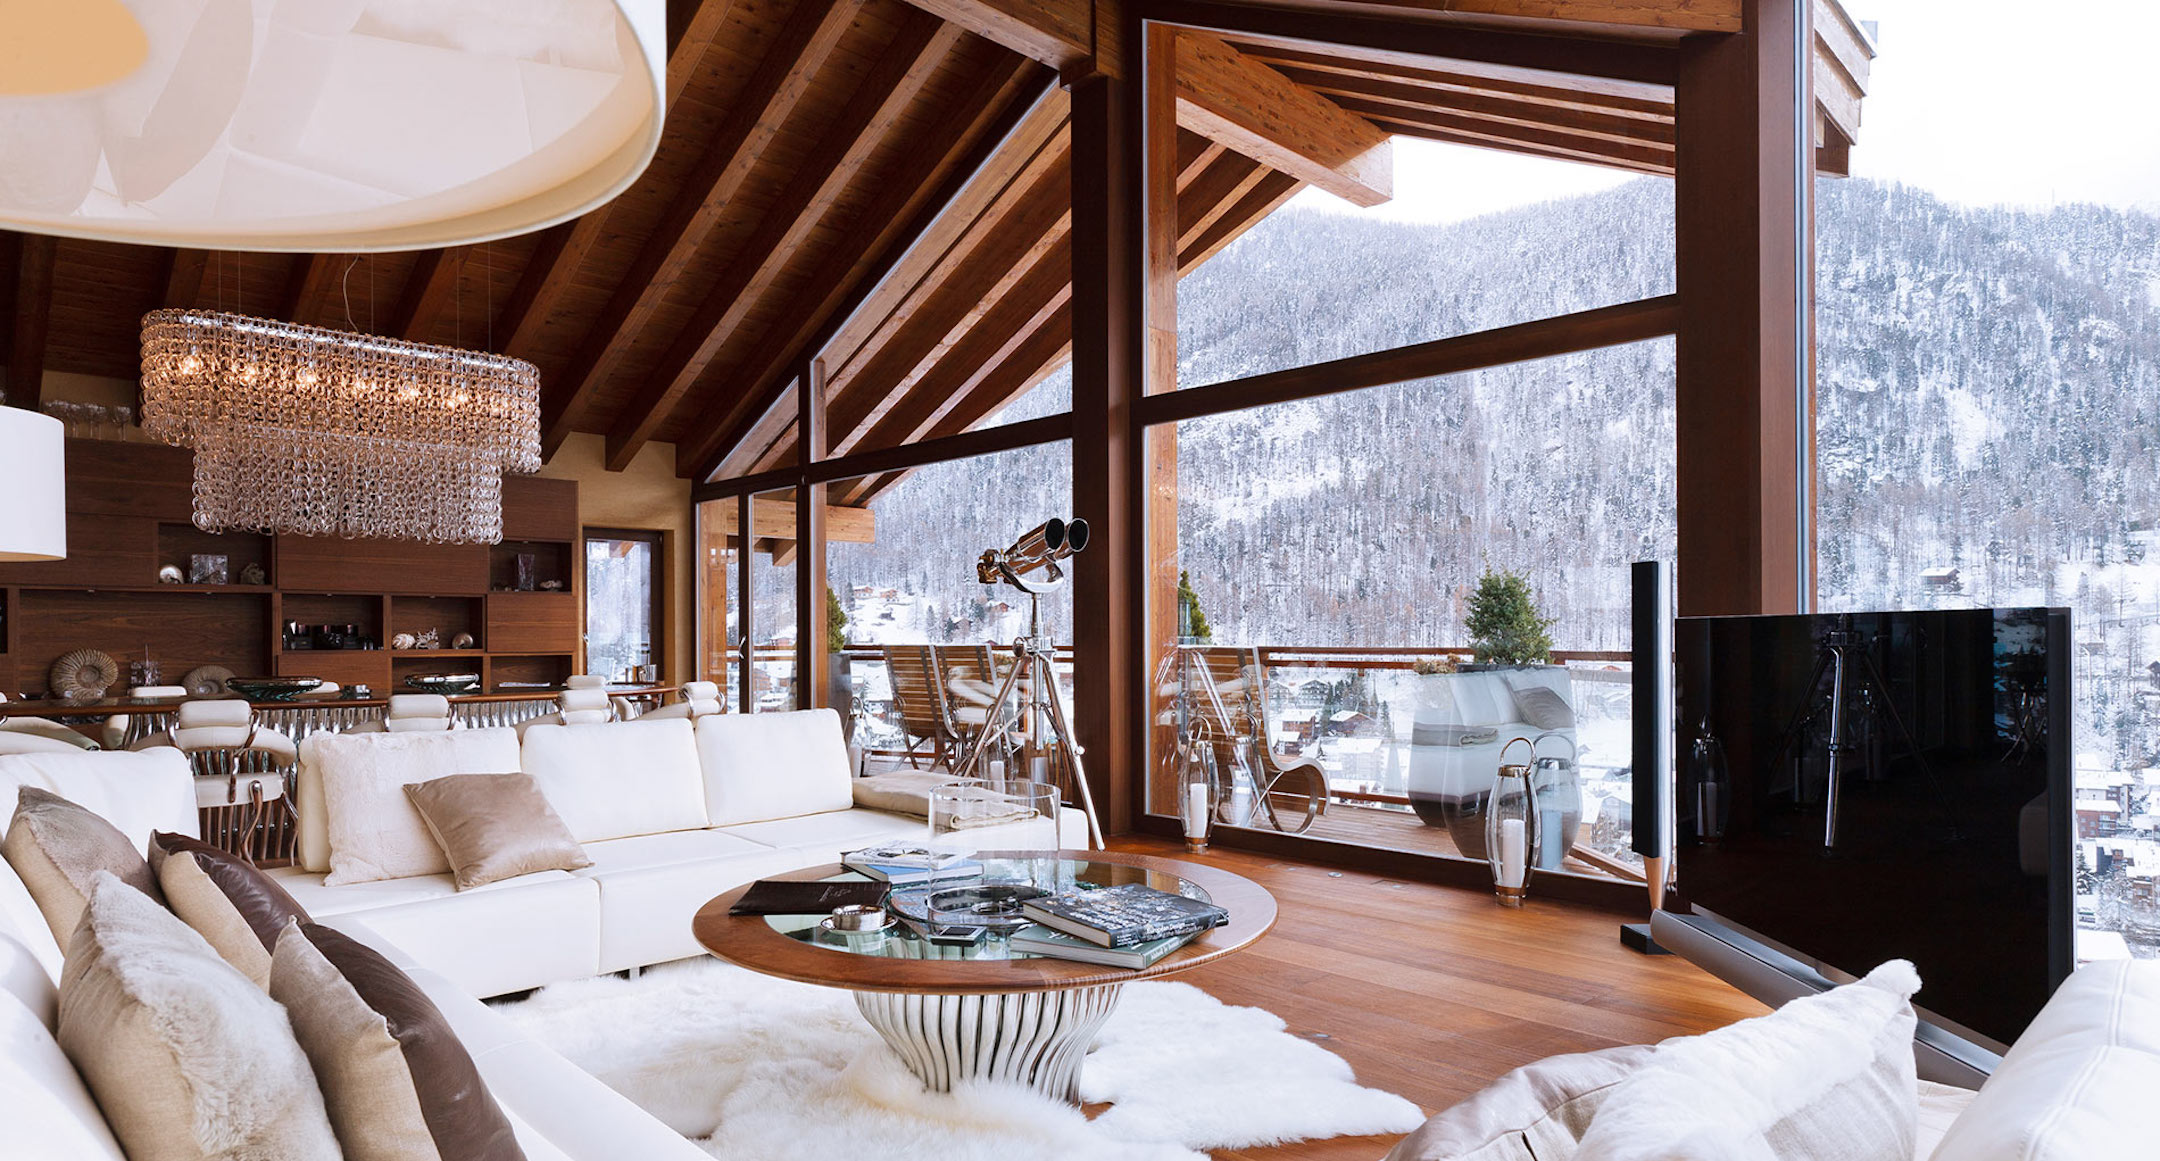 Ski Chalet Interior Design 10 of the most luxurious ski chalets in the world | the